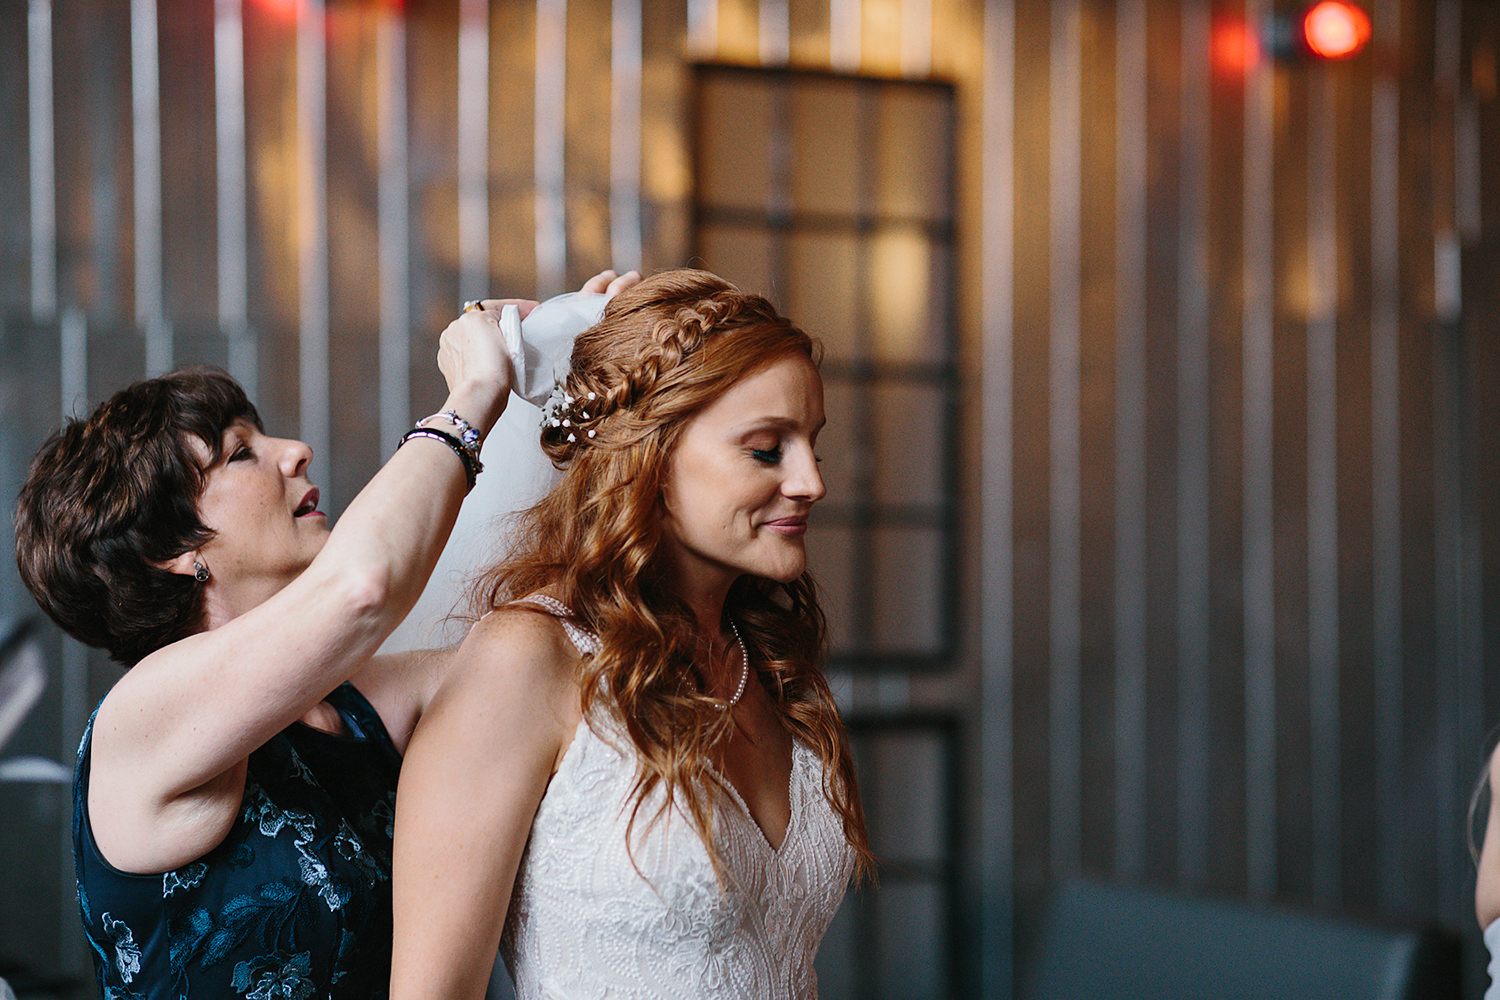 downtown-toronto-wedding-photographer-ryanne-hollies-photography-airship37-distillery-district-wedding-day-modern-minimalist-venues-in-toronto-cool-trendy-hipster-bride-getting-ready-mom-putting-on-veil-emotional-crying.jpg